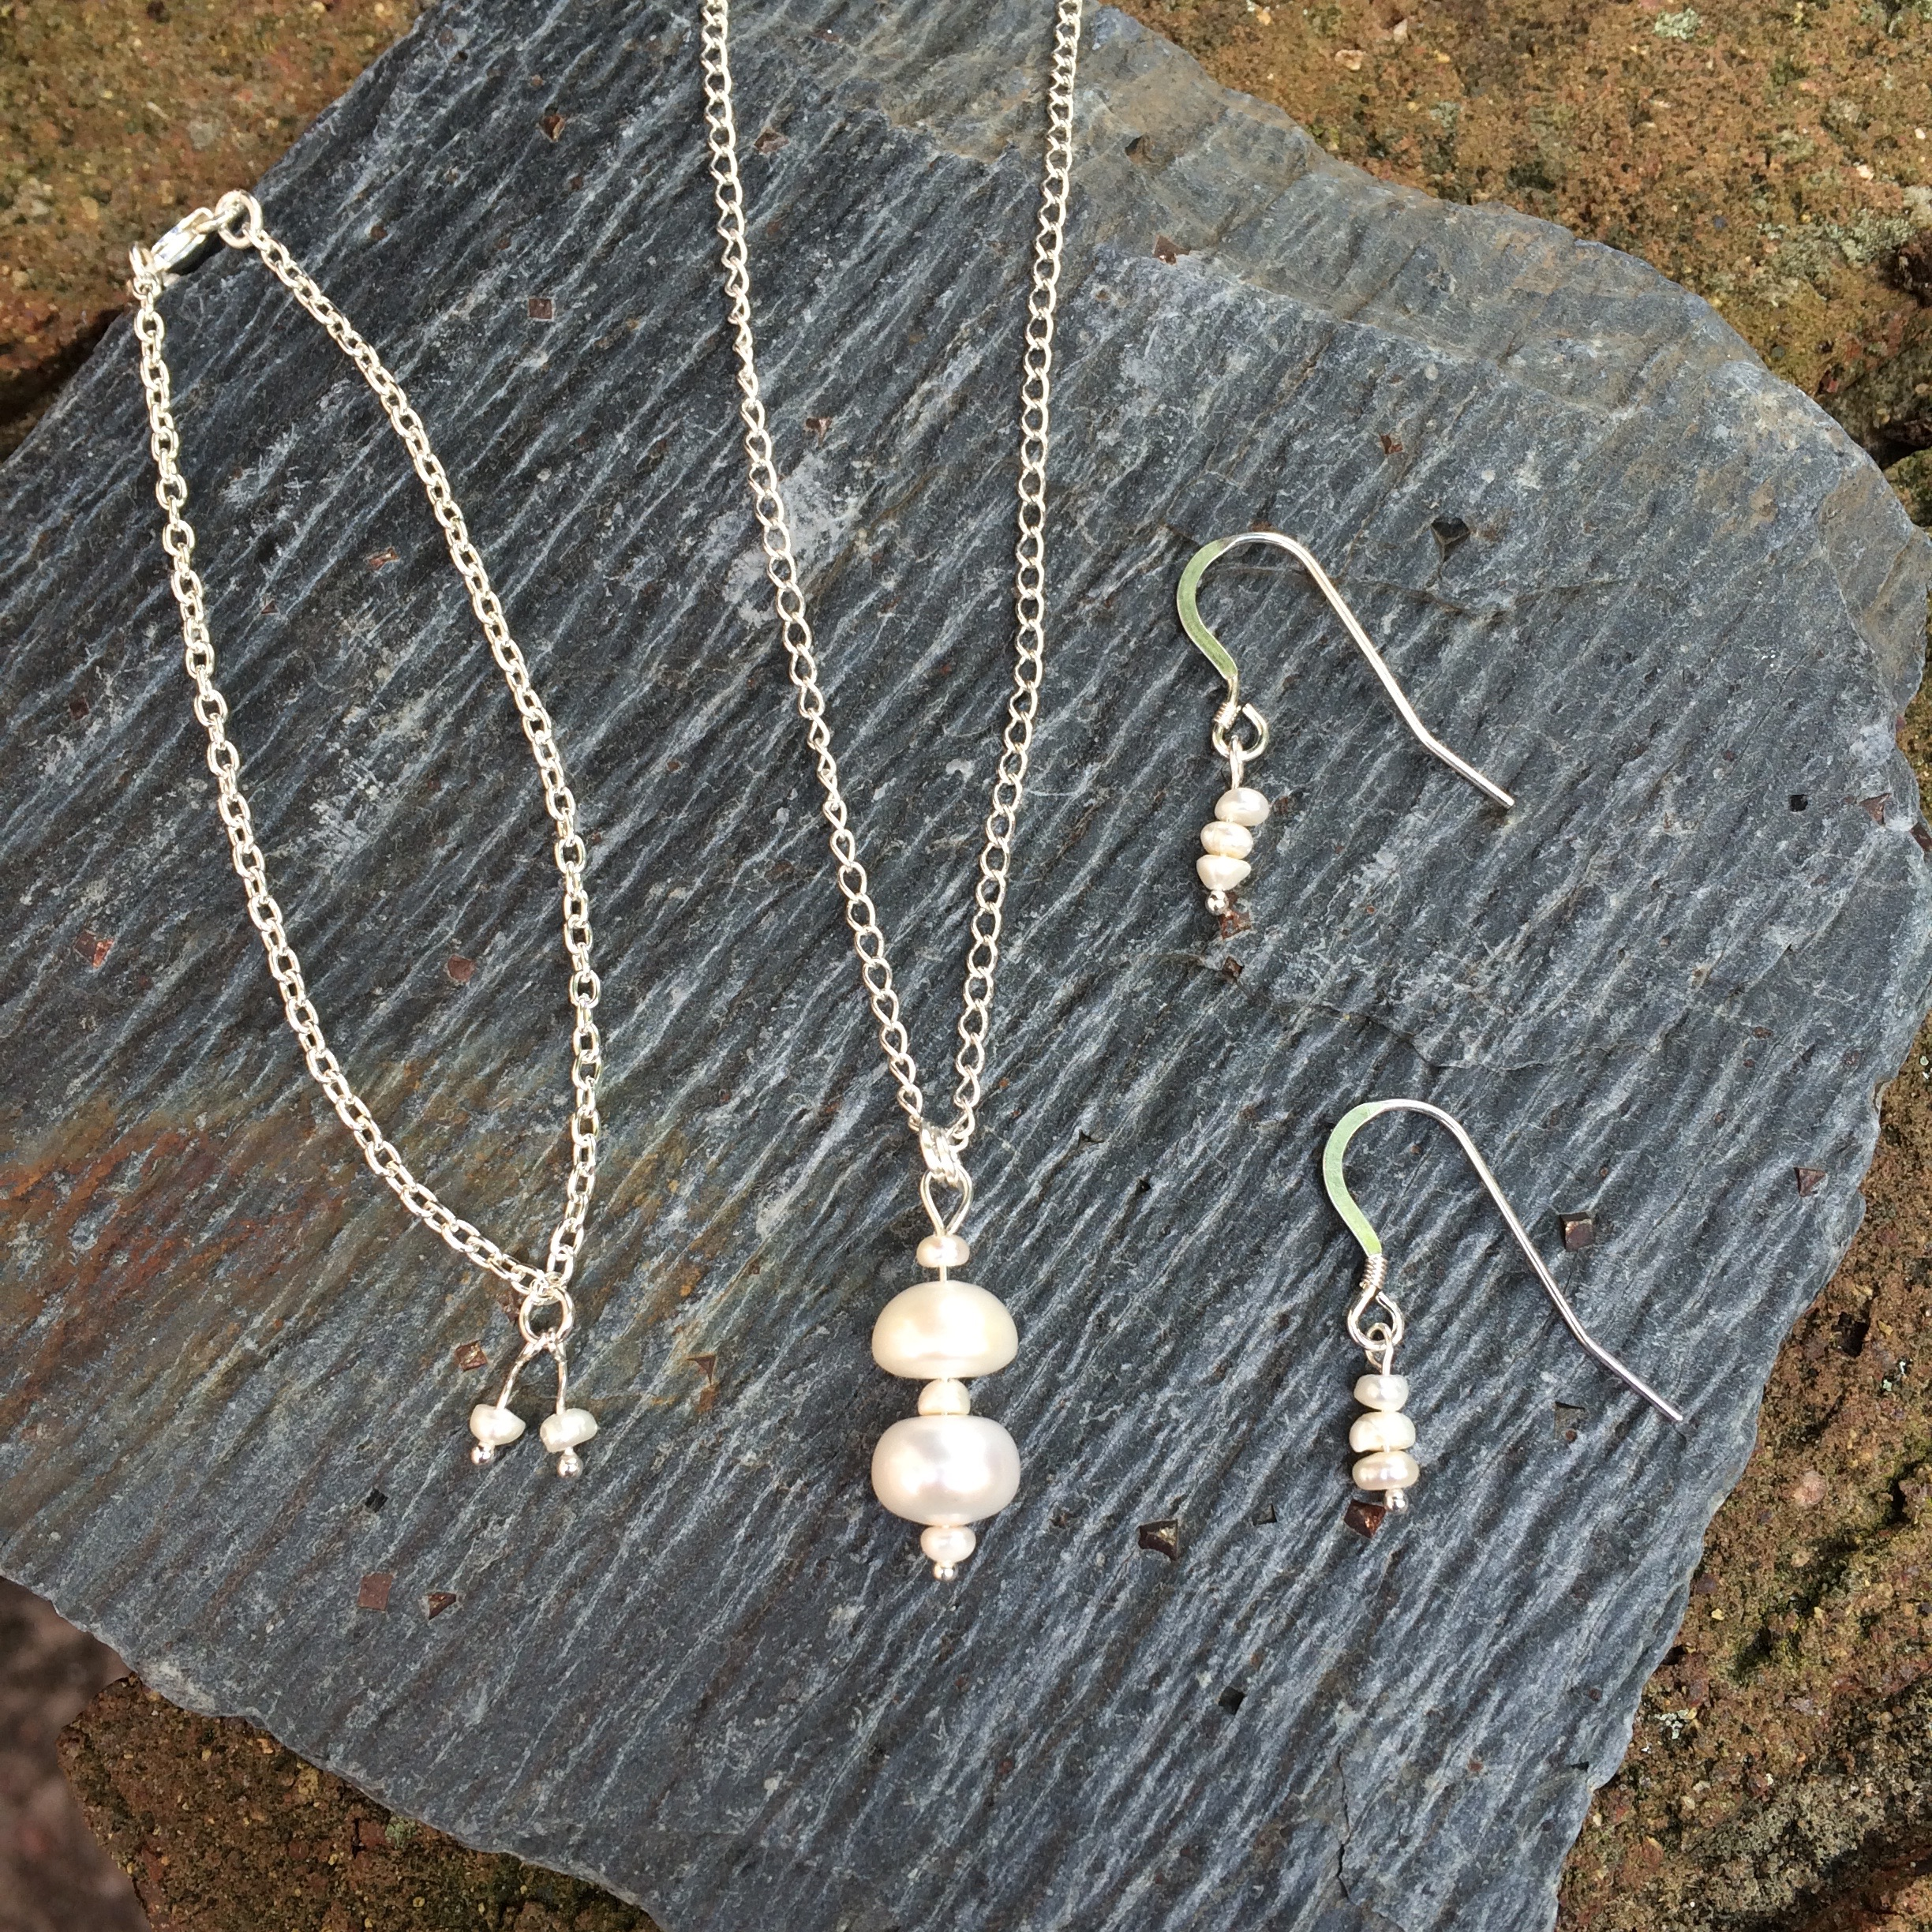 Commissioned jewellery by Penelope